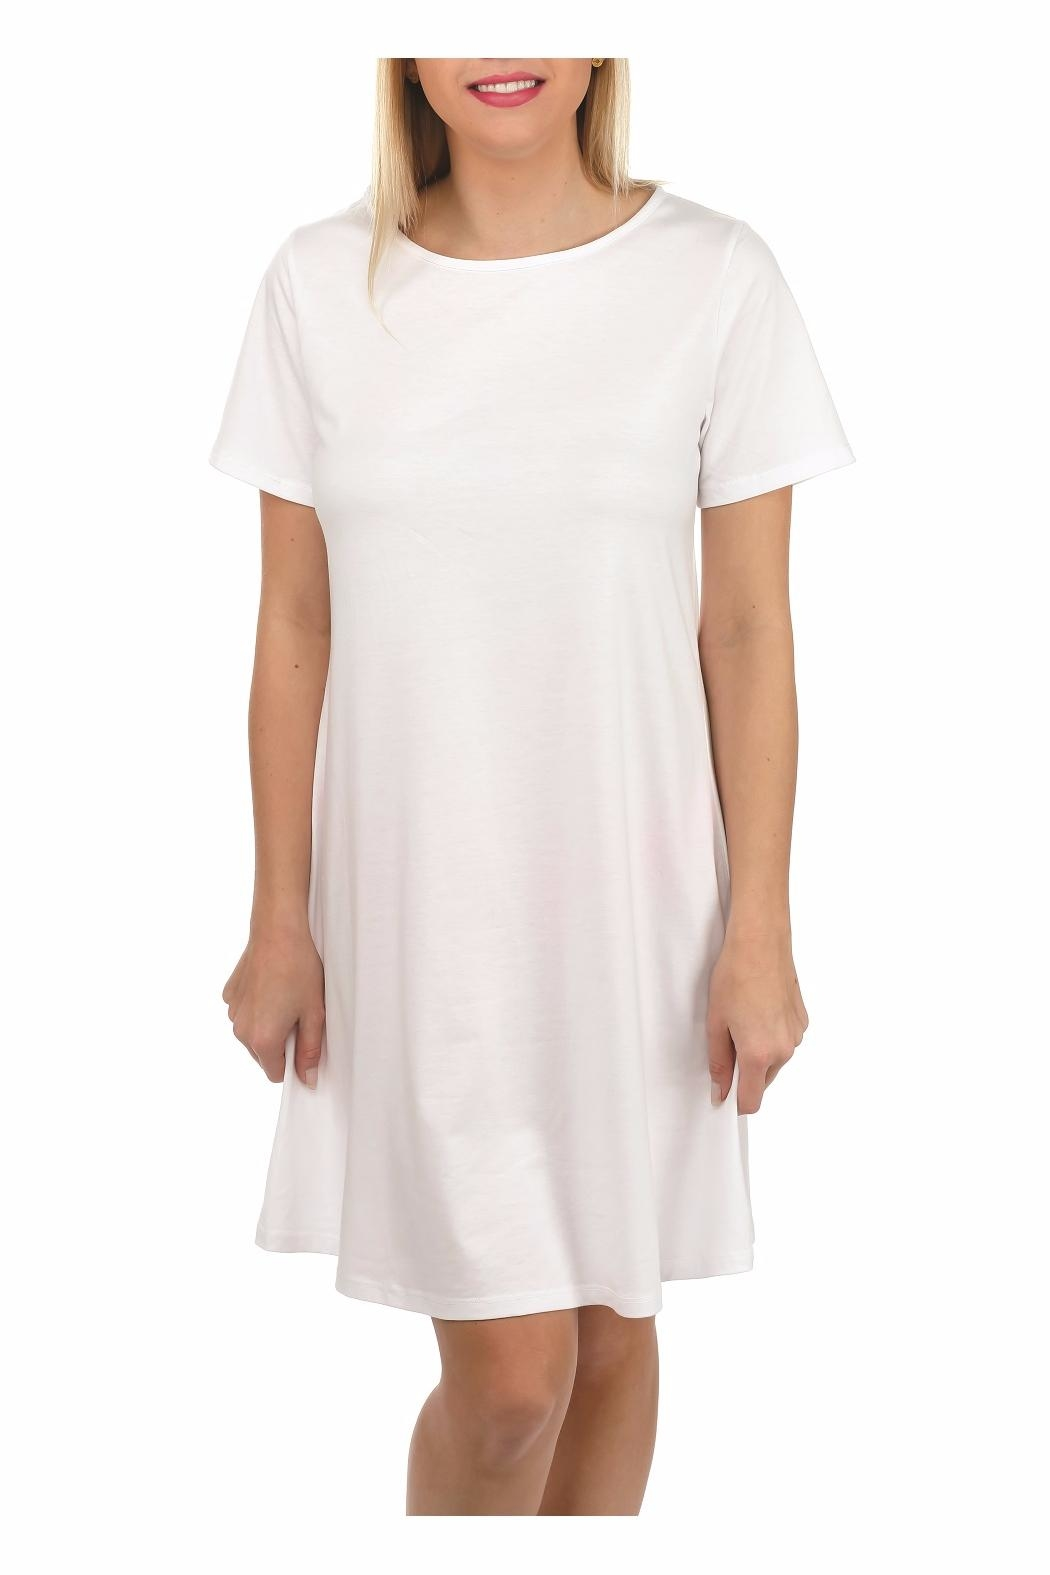 Top It Off Solid T-Shirt Dress - Main Image